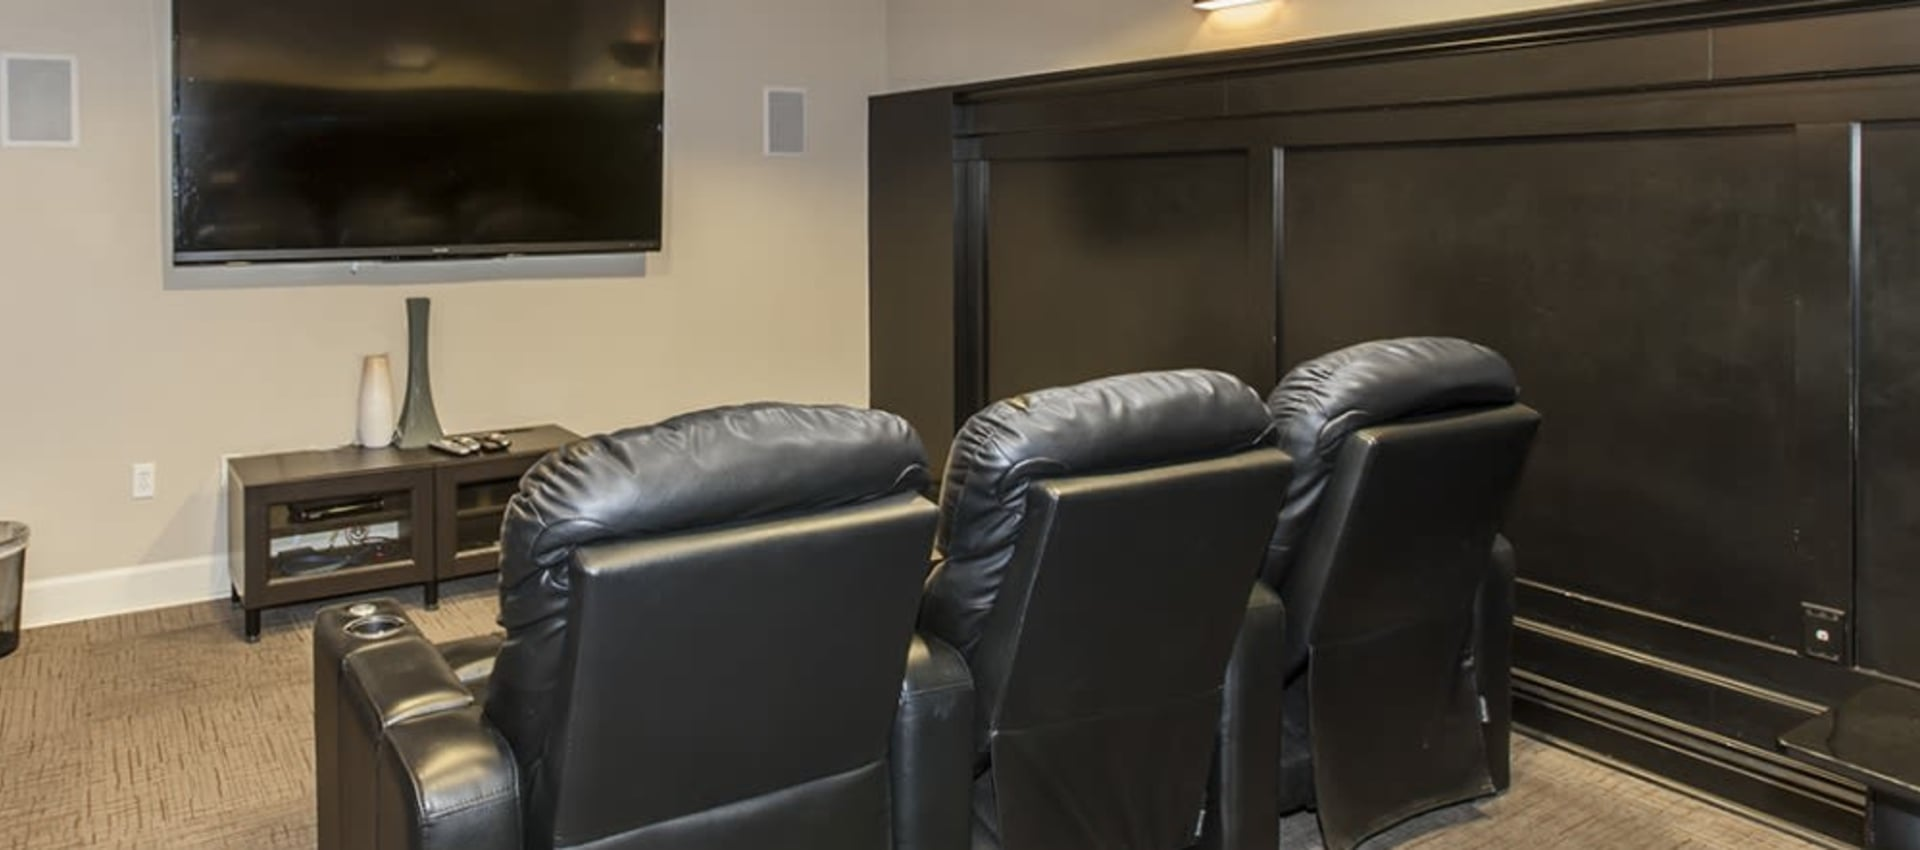 Theater room with recliners at Park Central in Concord, California